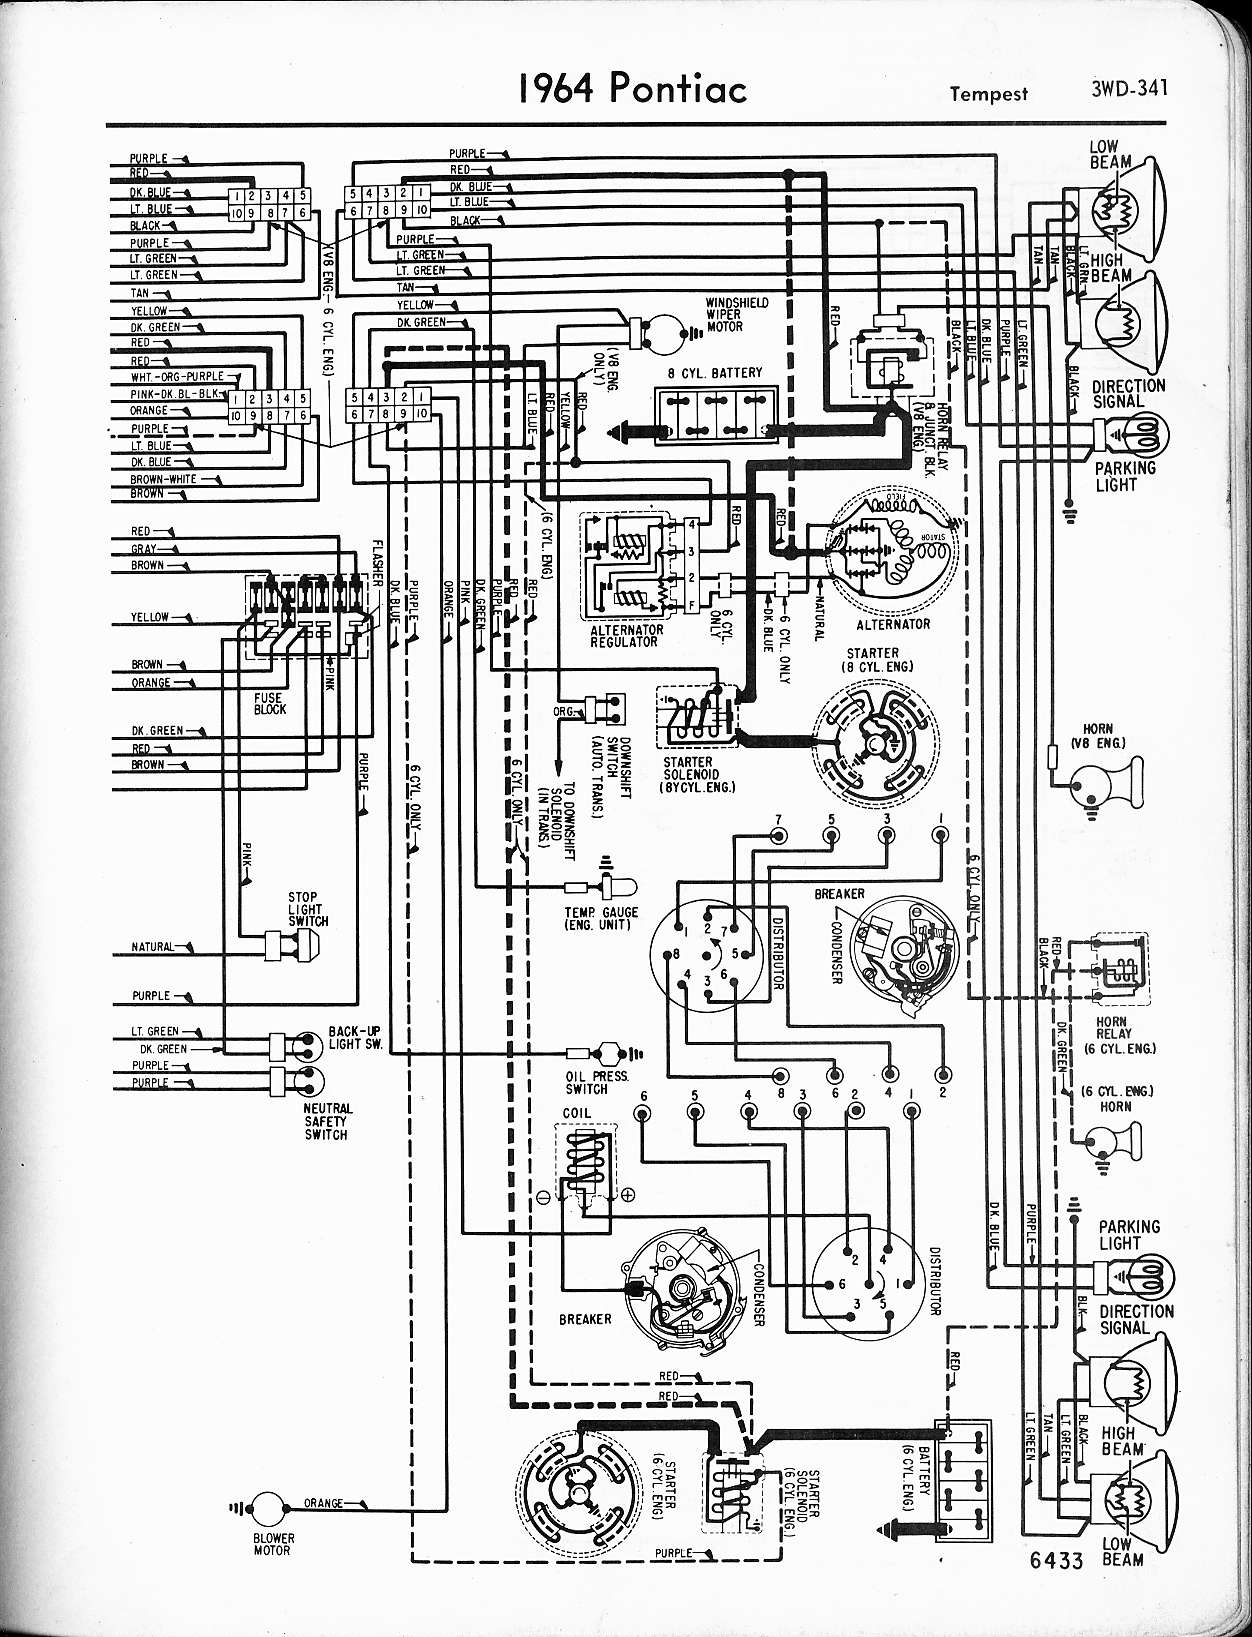 1970 pontiac catalina wiring diagram imageresizertool com Wiring Diagram  Pontiac GTO Judge 67 Firebird Wiring Diagram